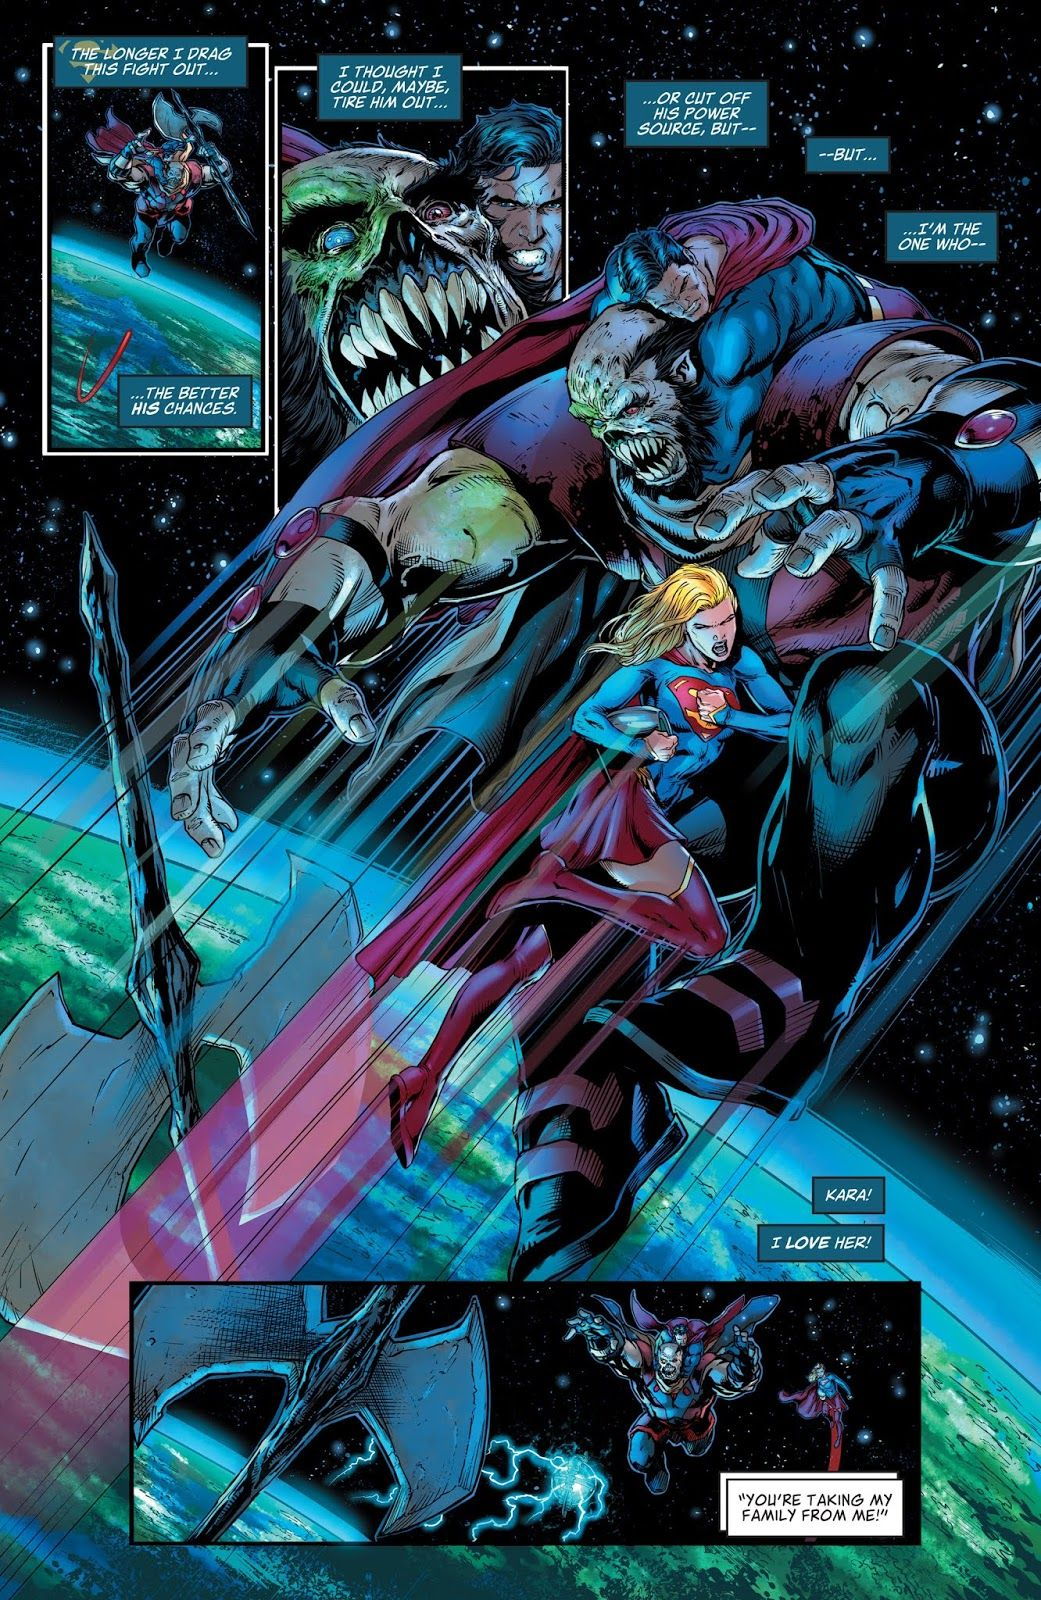 The Man Of Steel 2018 Issue 6 Read The Man Of Steel 2018 Issue 6 Comic Online In High Quality Man Of Steel Comic Books Art Superboy Prime